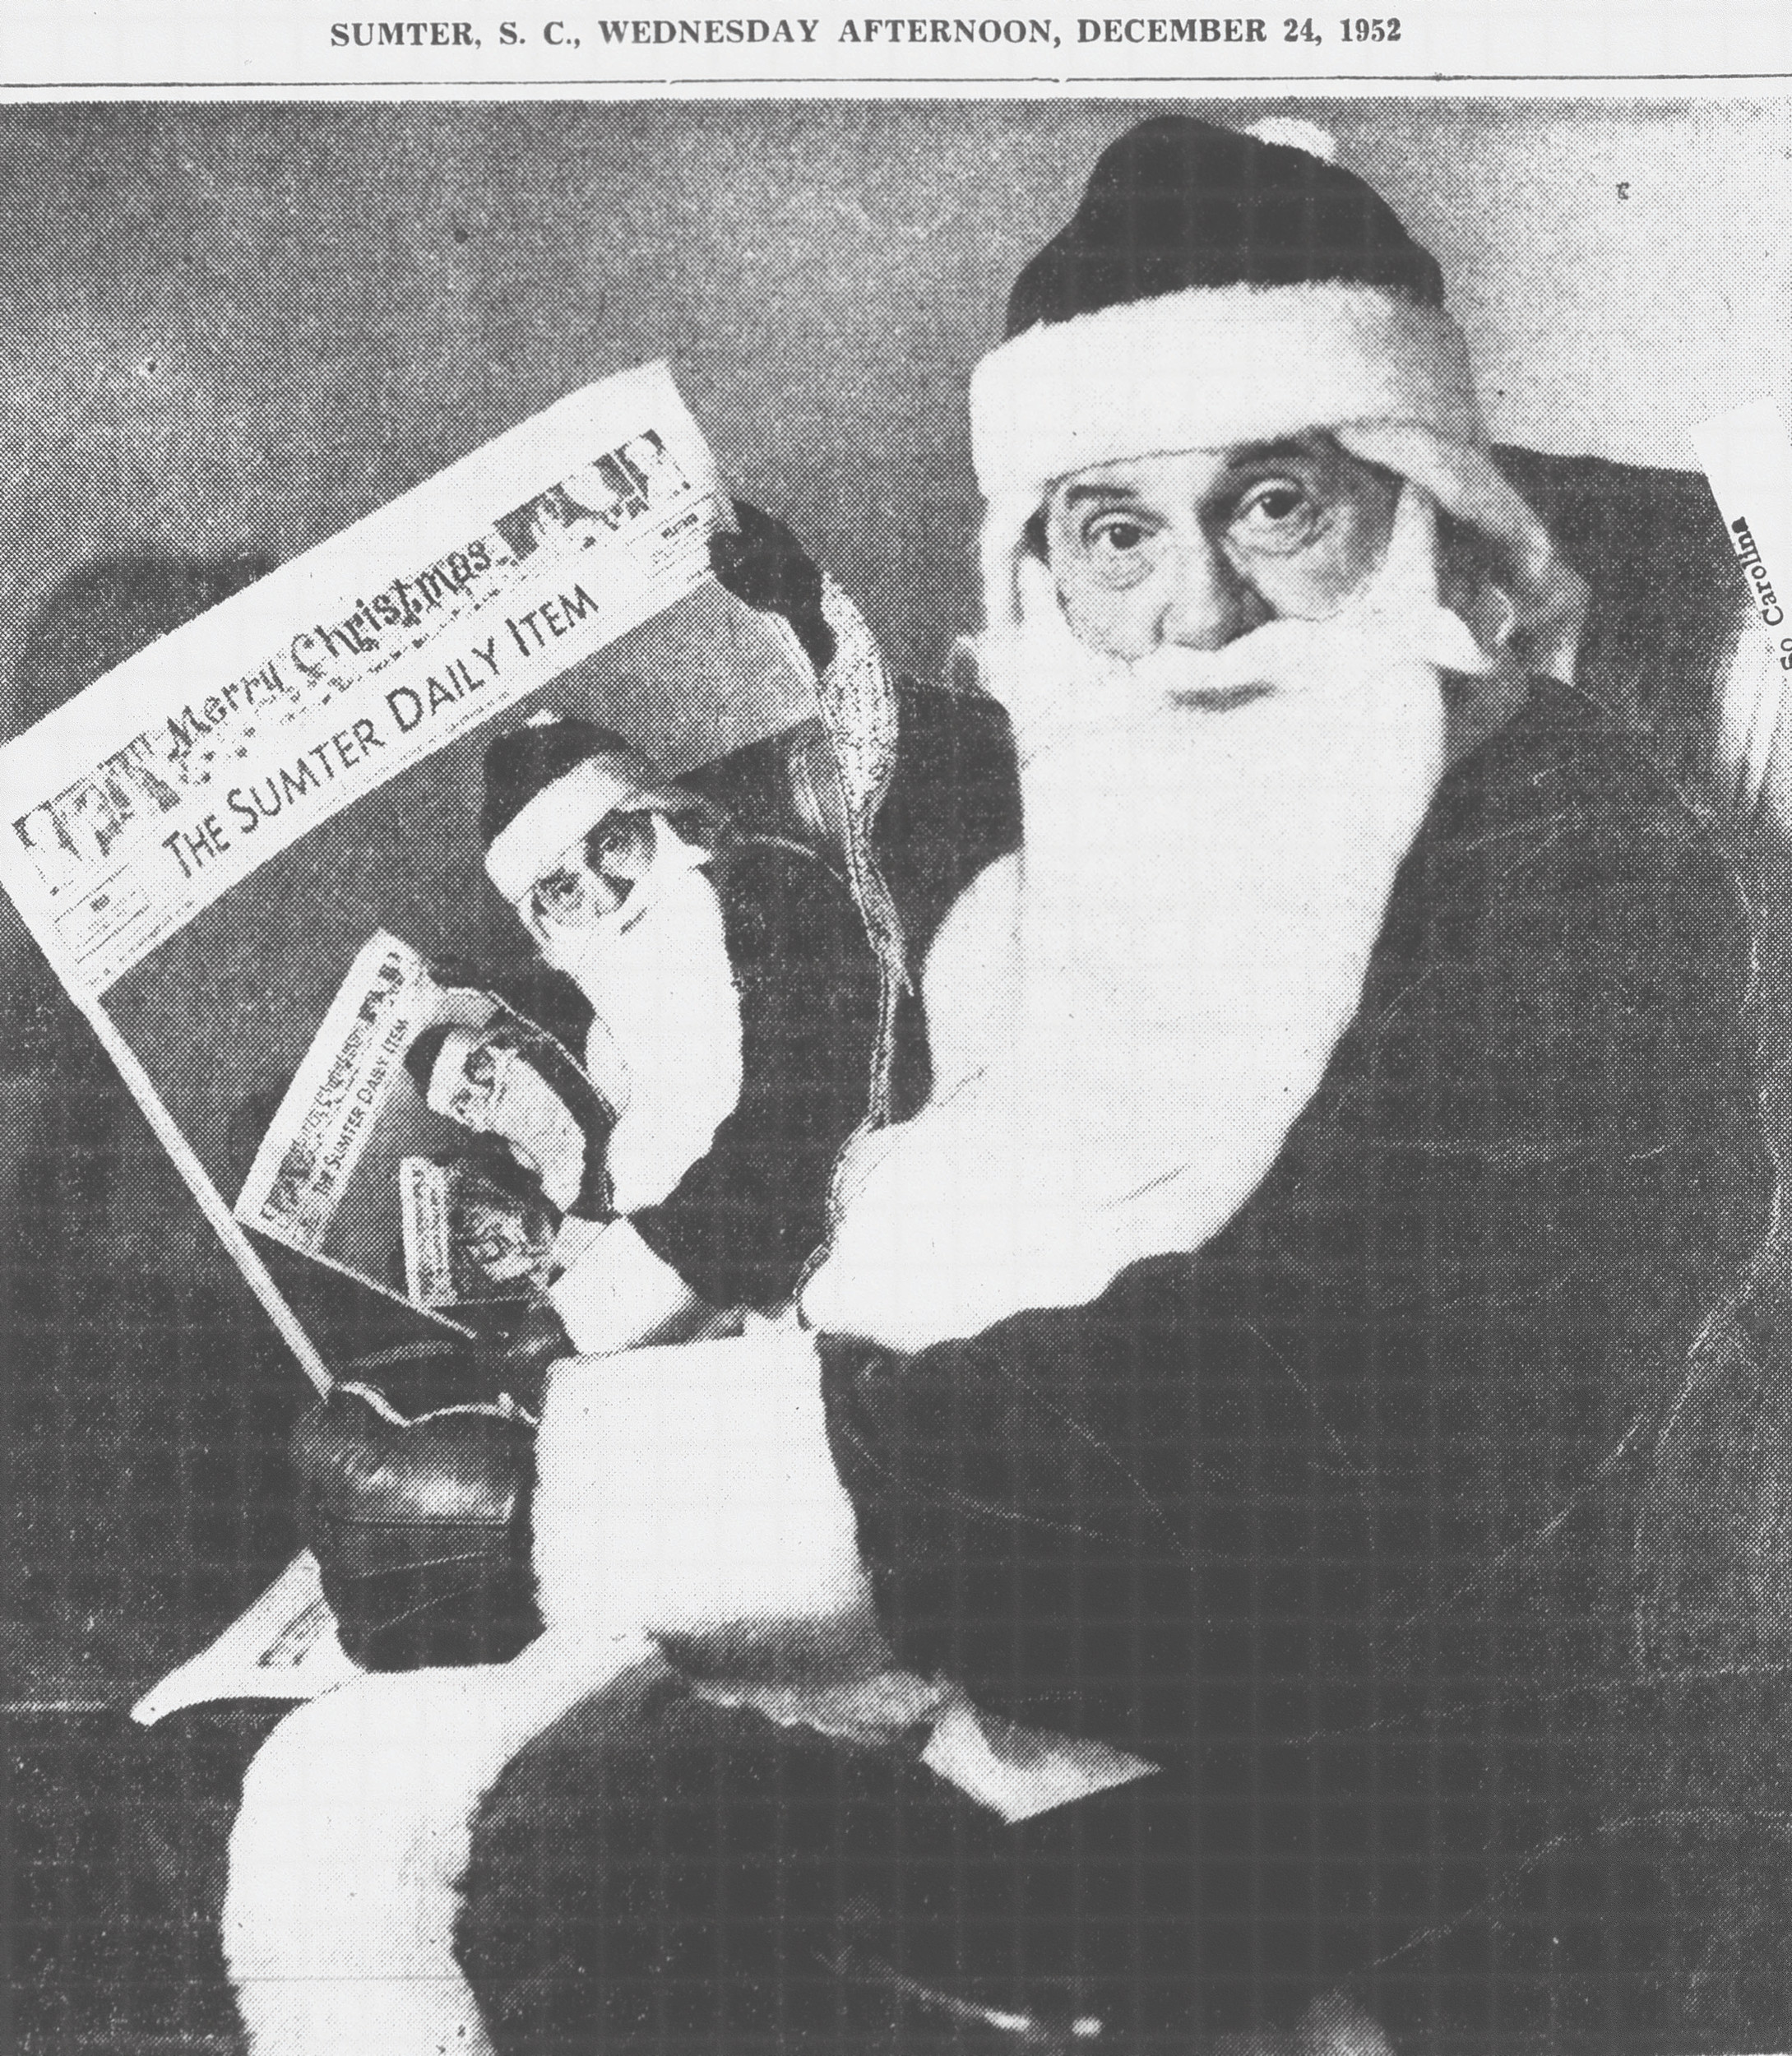 Santa Claus is the late Hubert Duvall Osteen, longtime editor/publisher/owner of The Sumter Item. He's holding the Wednesday, Dec. 24, 1952, edition of The Sumter Daily Item. The darkroom photo magic - done long before Photoshop was imagined - was by the late Heyward Crowson, Sumter's photographer for many years.